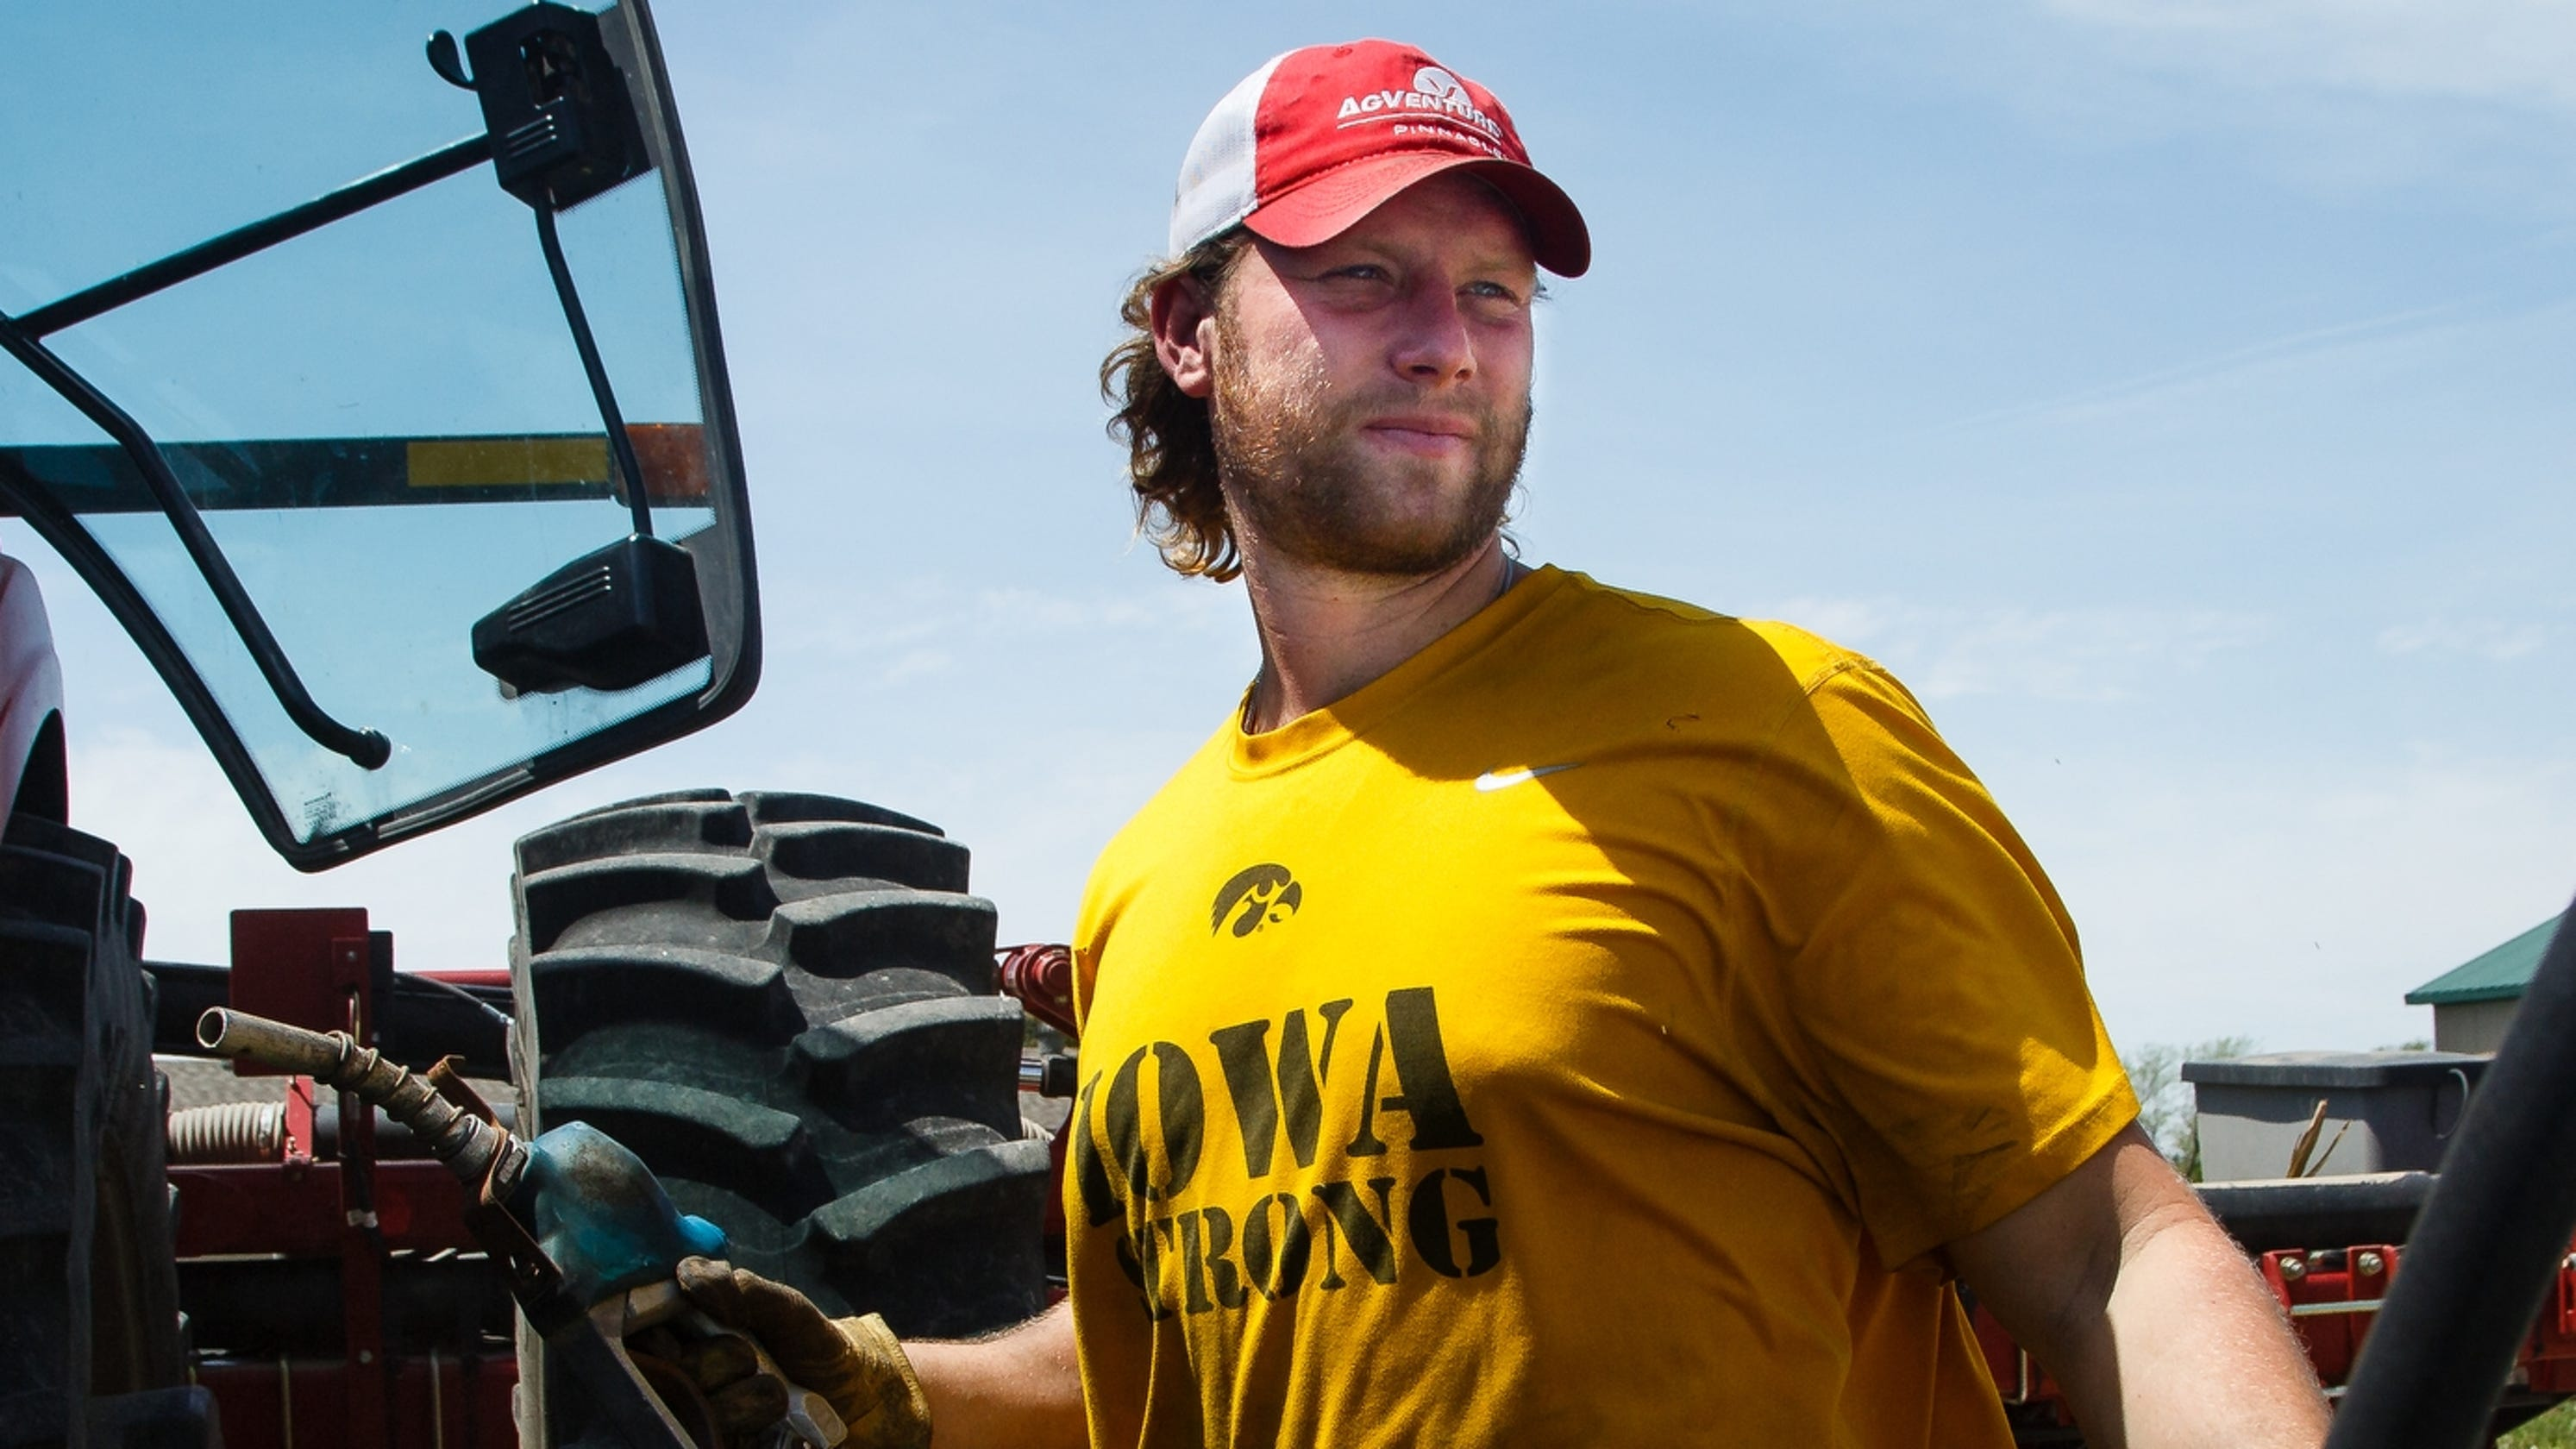 His NFL dreams fell apart. So former Iowa star Drew Ott is building a new life on the farm